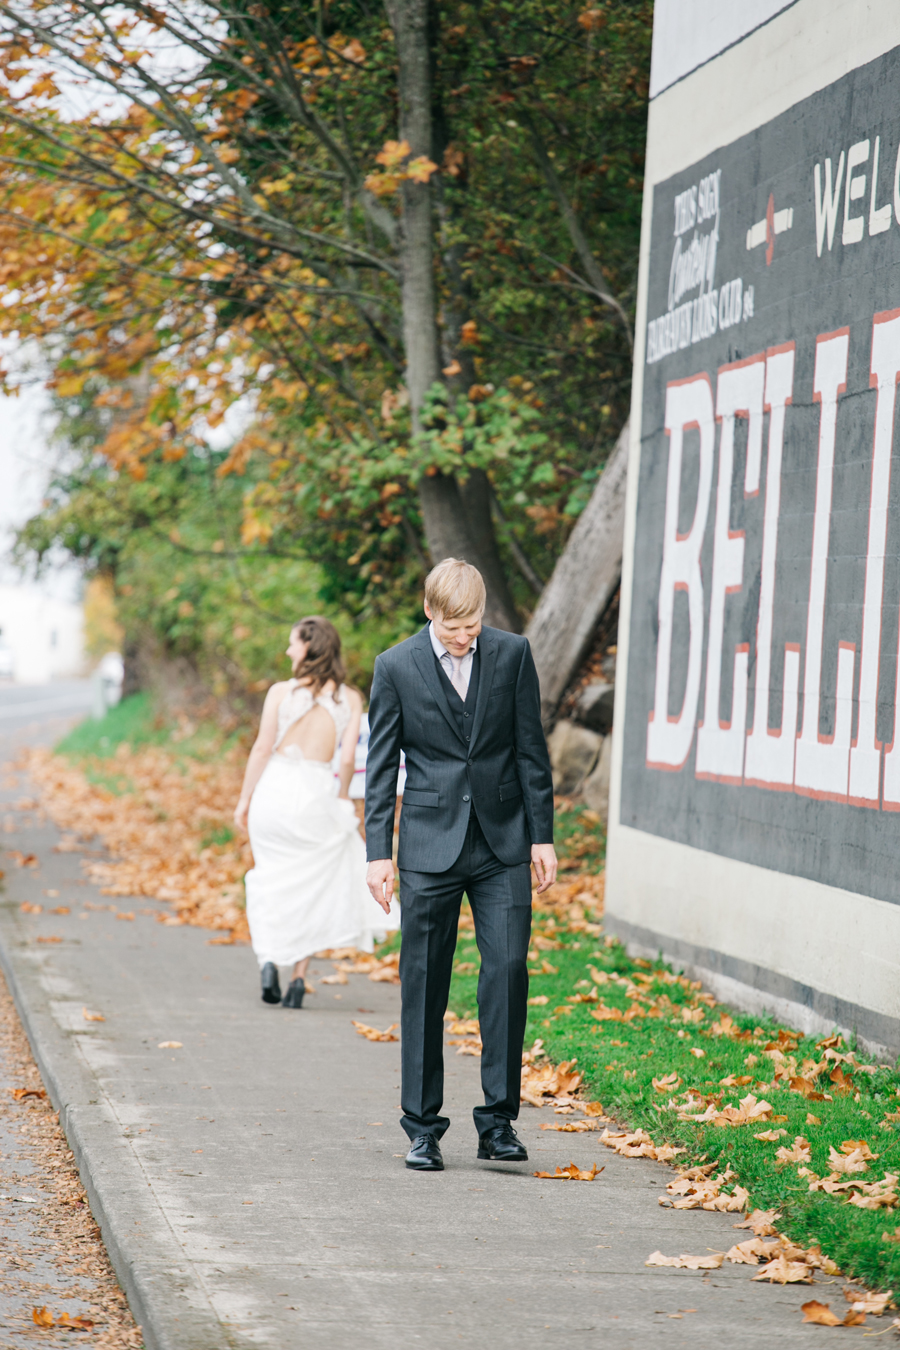 007-bellingham-fairhaven-wedding-photographer-bellingham-ferry-terminal-katheryn-moran-photography.jpg